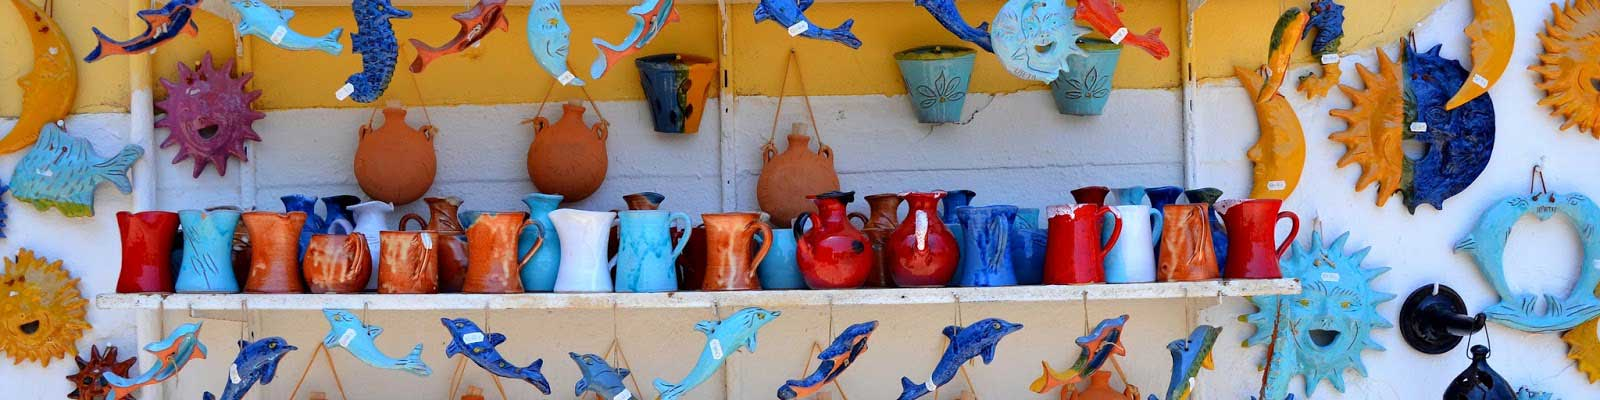 in the whole of Margarites you will see colourfull ceramics